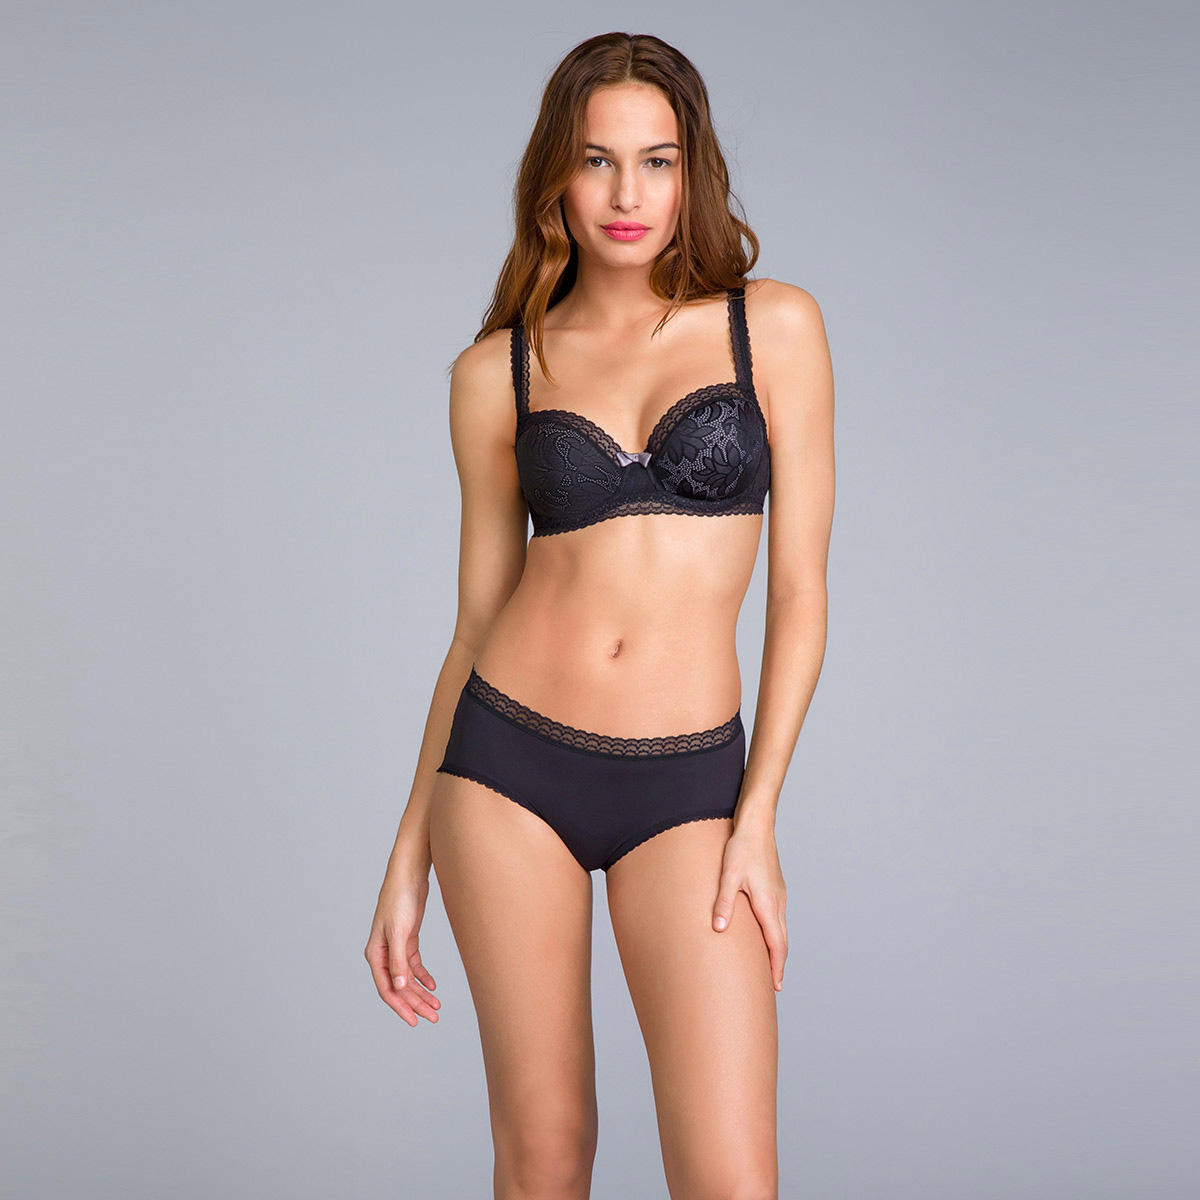 Balcony Bra in Black Lace - Invisible Elegance, , PLAYTEX